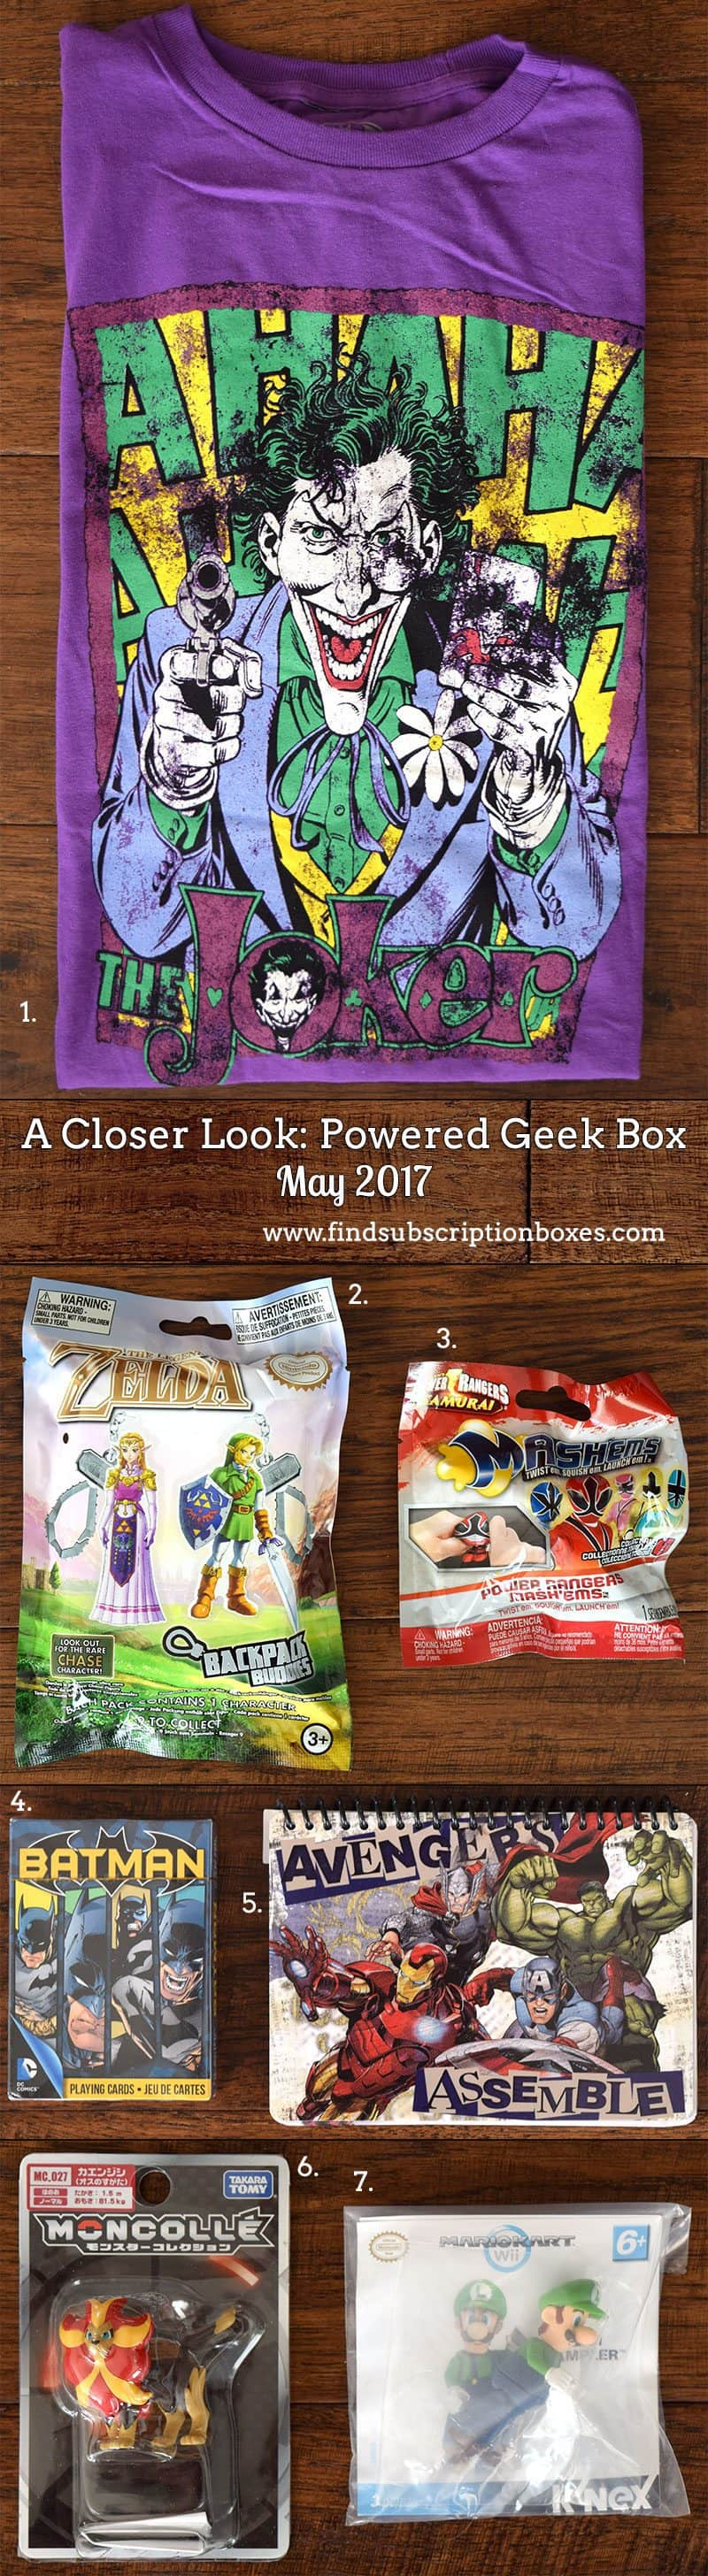 May 2017 Powered Geek Box Review - Inside the Box